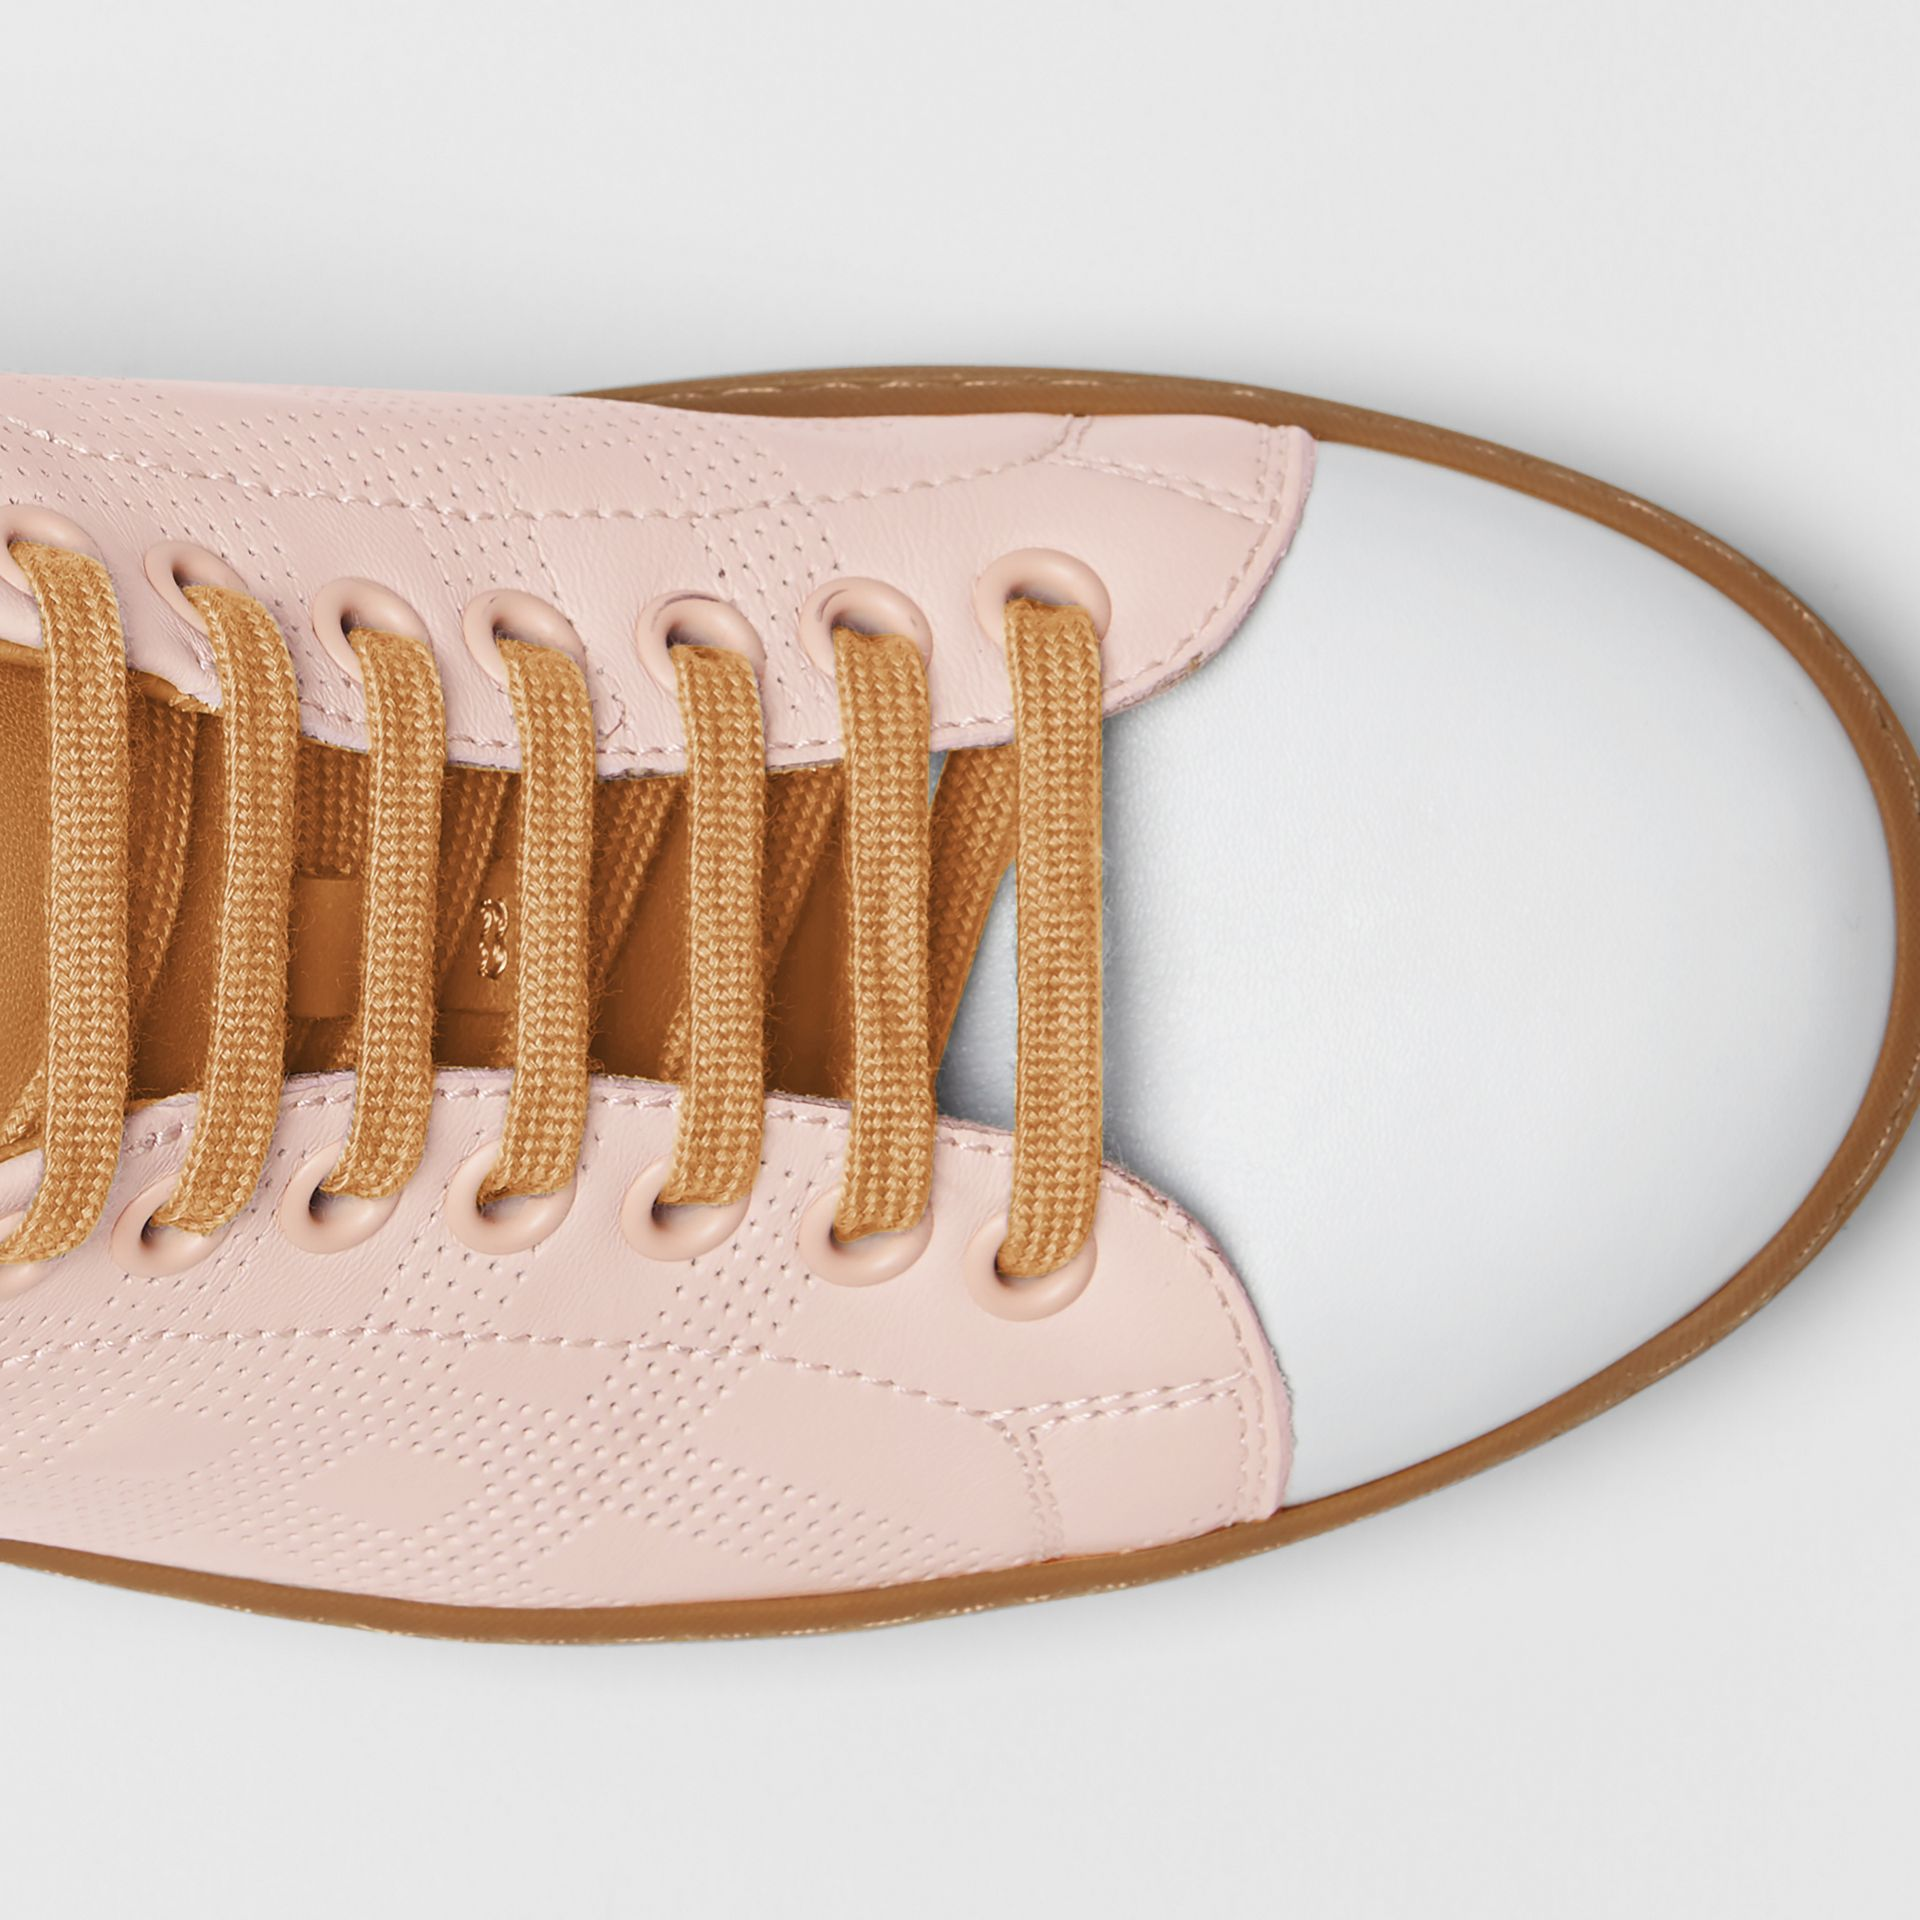 Tri-tone Perforated Check Leather Sneakers in Pale Pink - Women | Burberry - gallery image 1